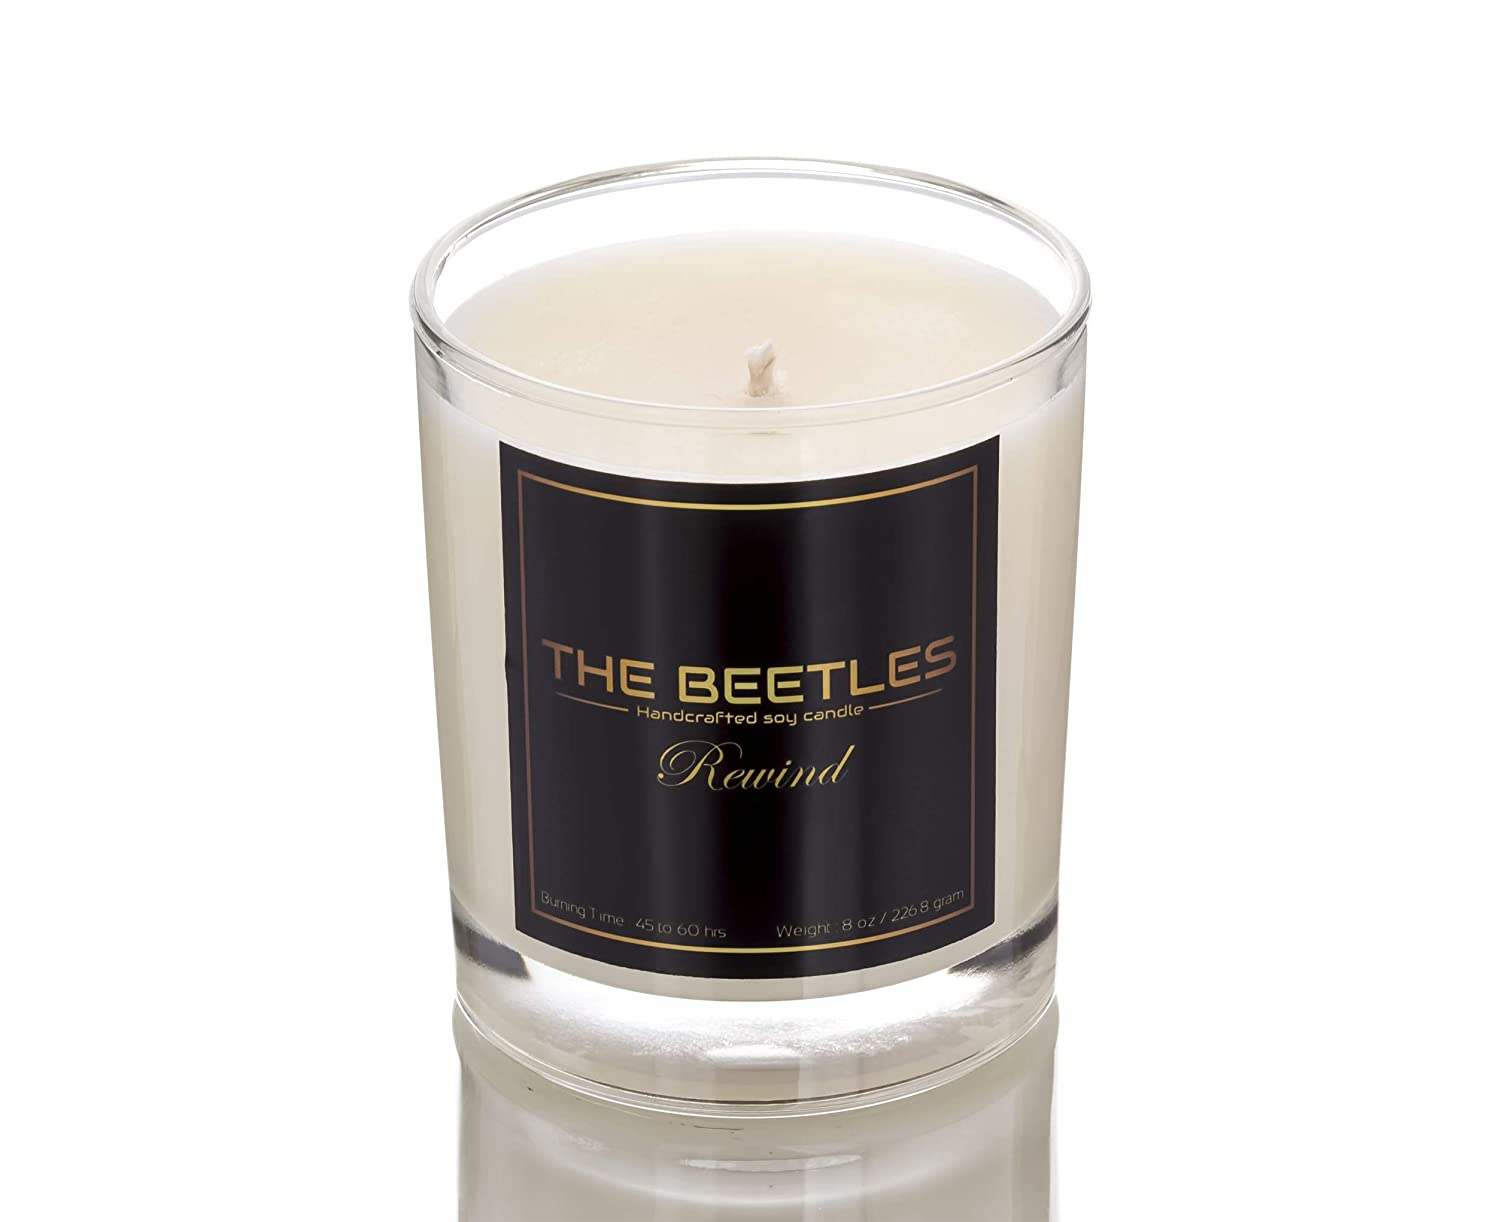 THE BEETLES Rewind Whiskey Glass Pure Soy Wax Scented Candle